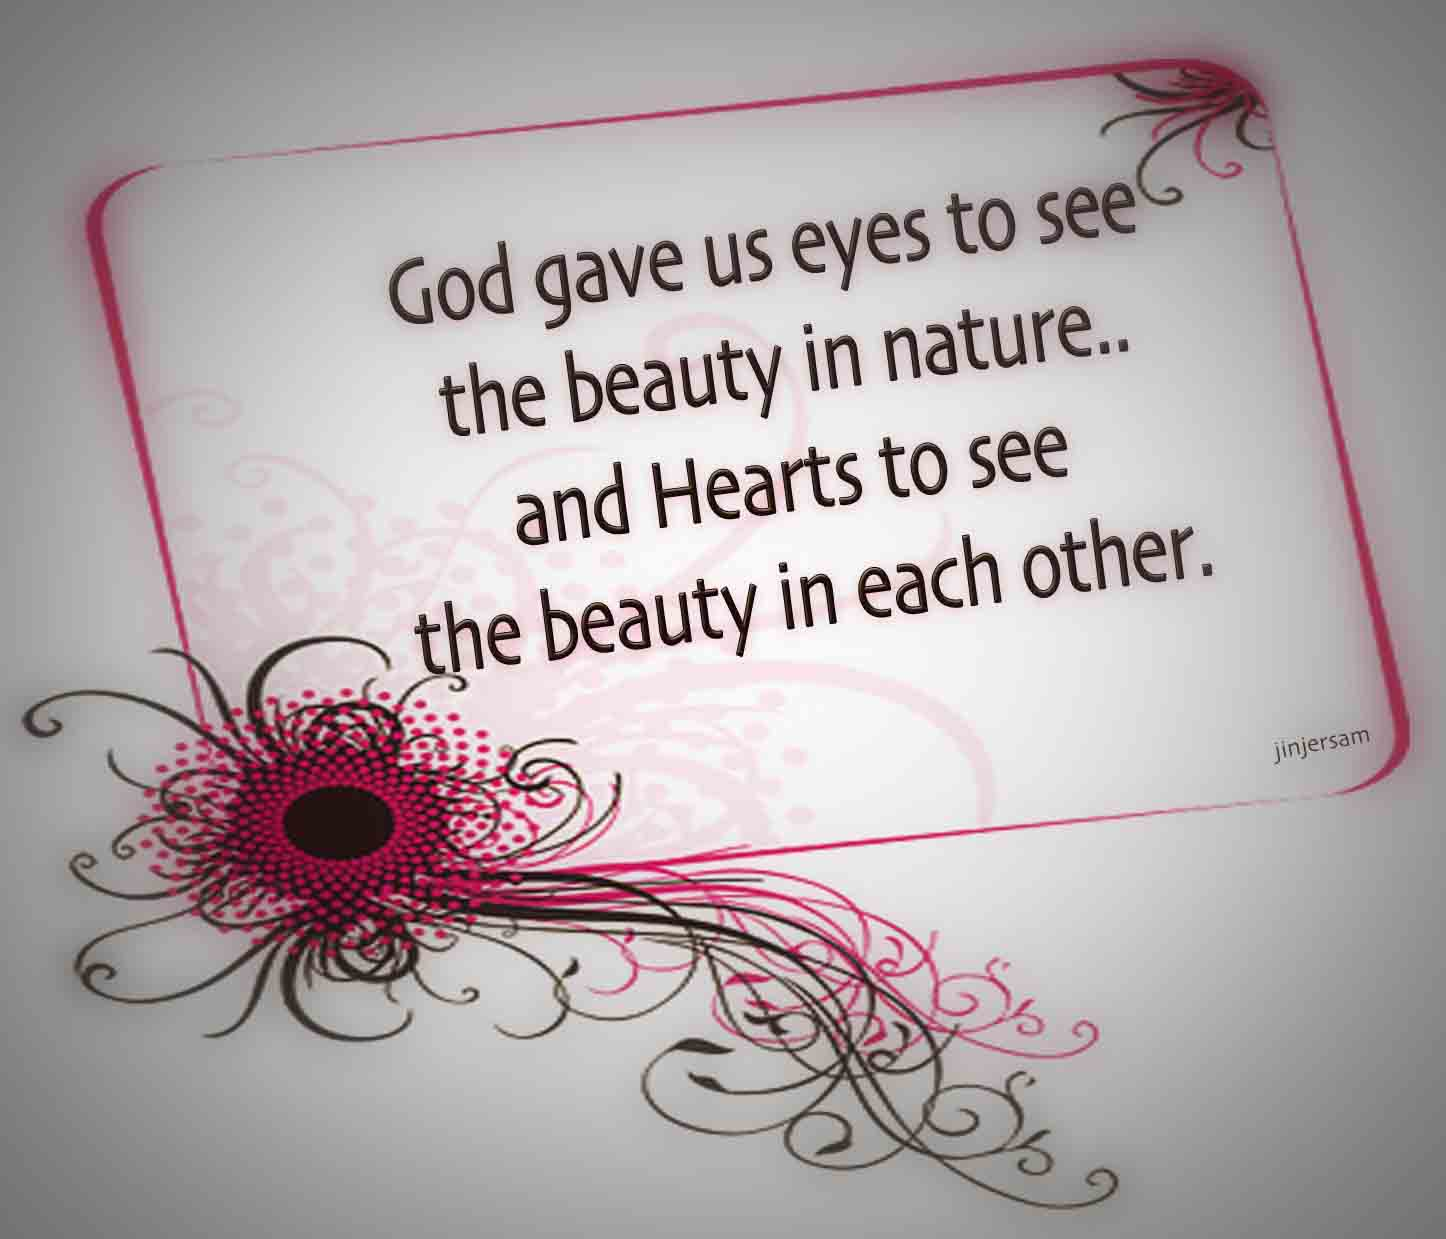 God gave us eyes to see the beauty in nature...and hearts to see the beauty in each other.